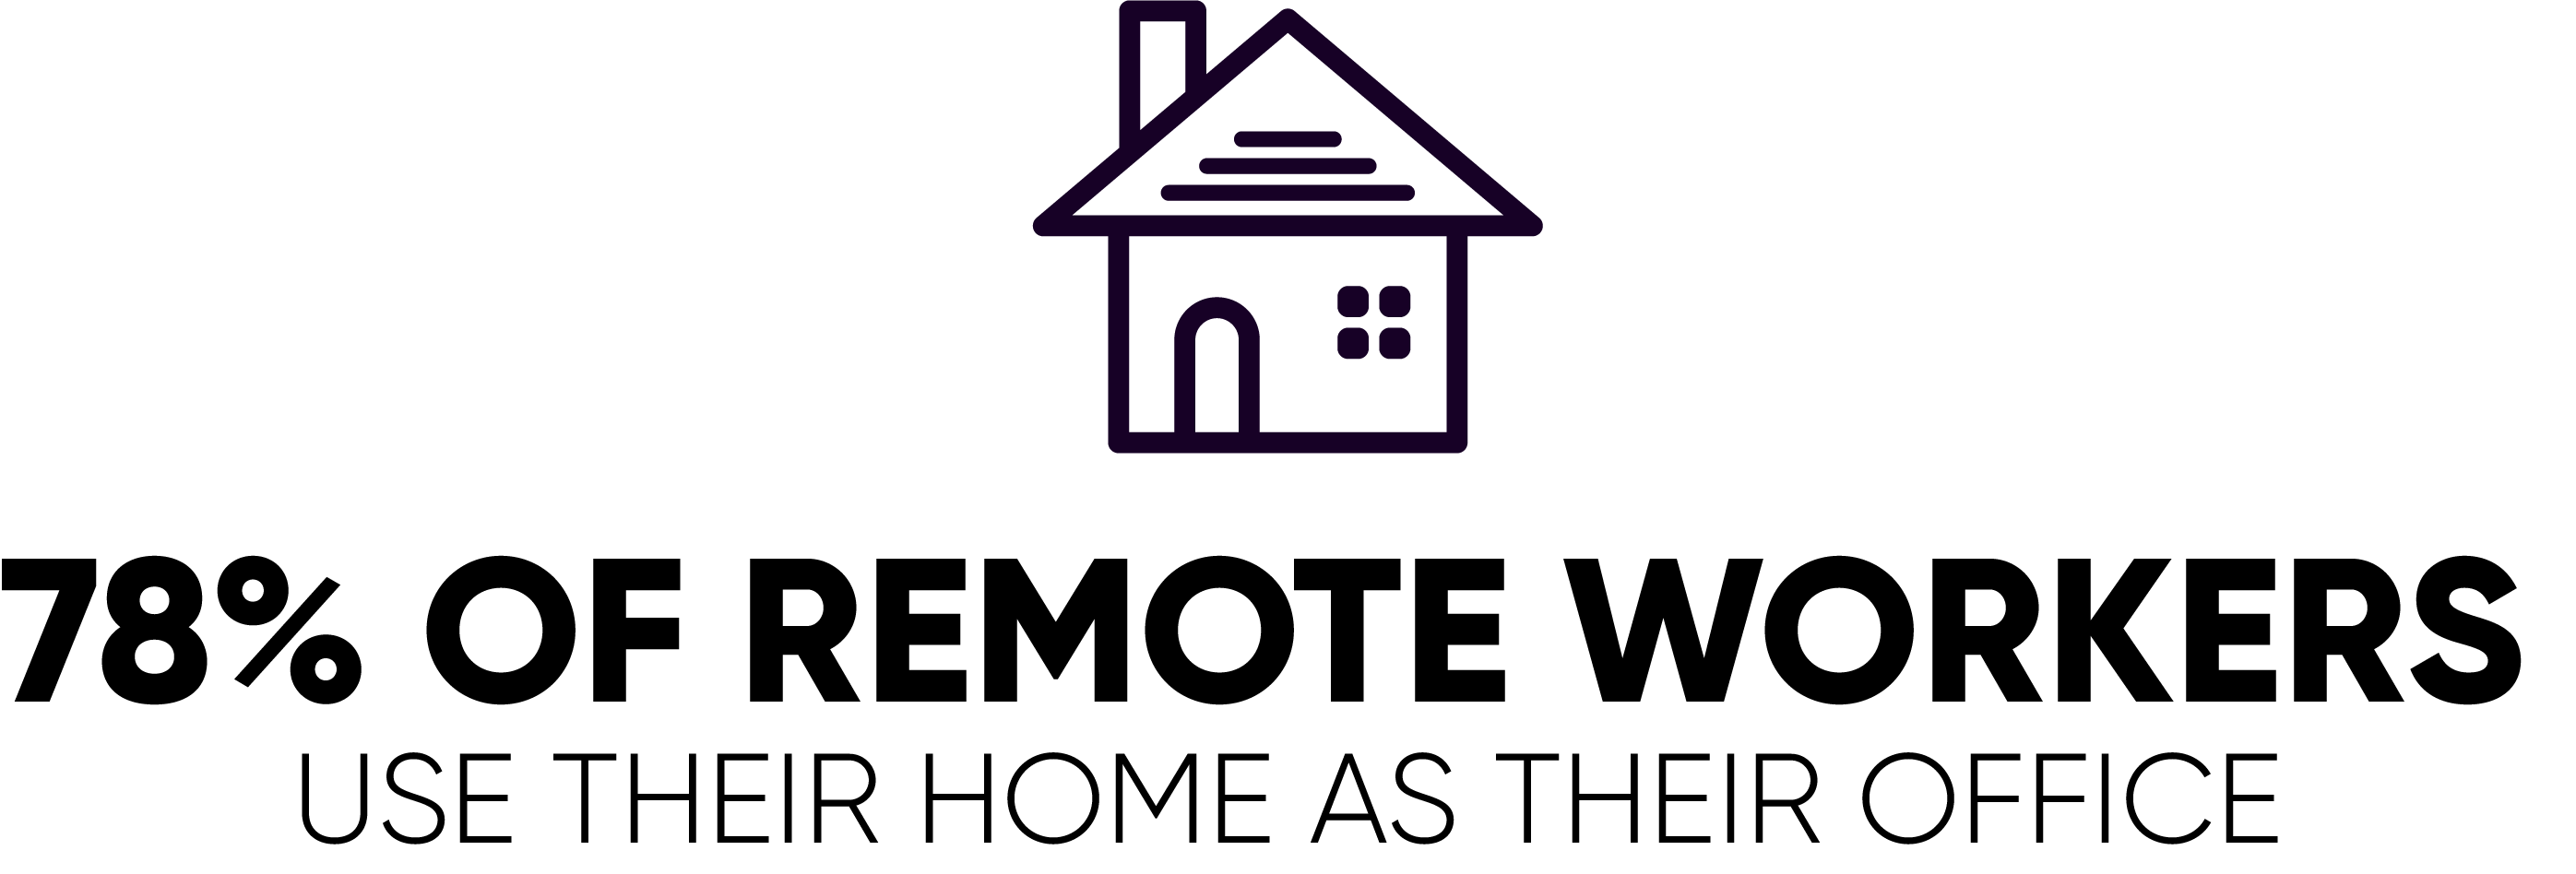 78% of Remote Workers Use Their Home as Their Office